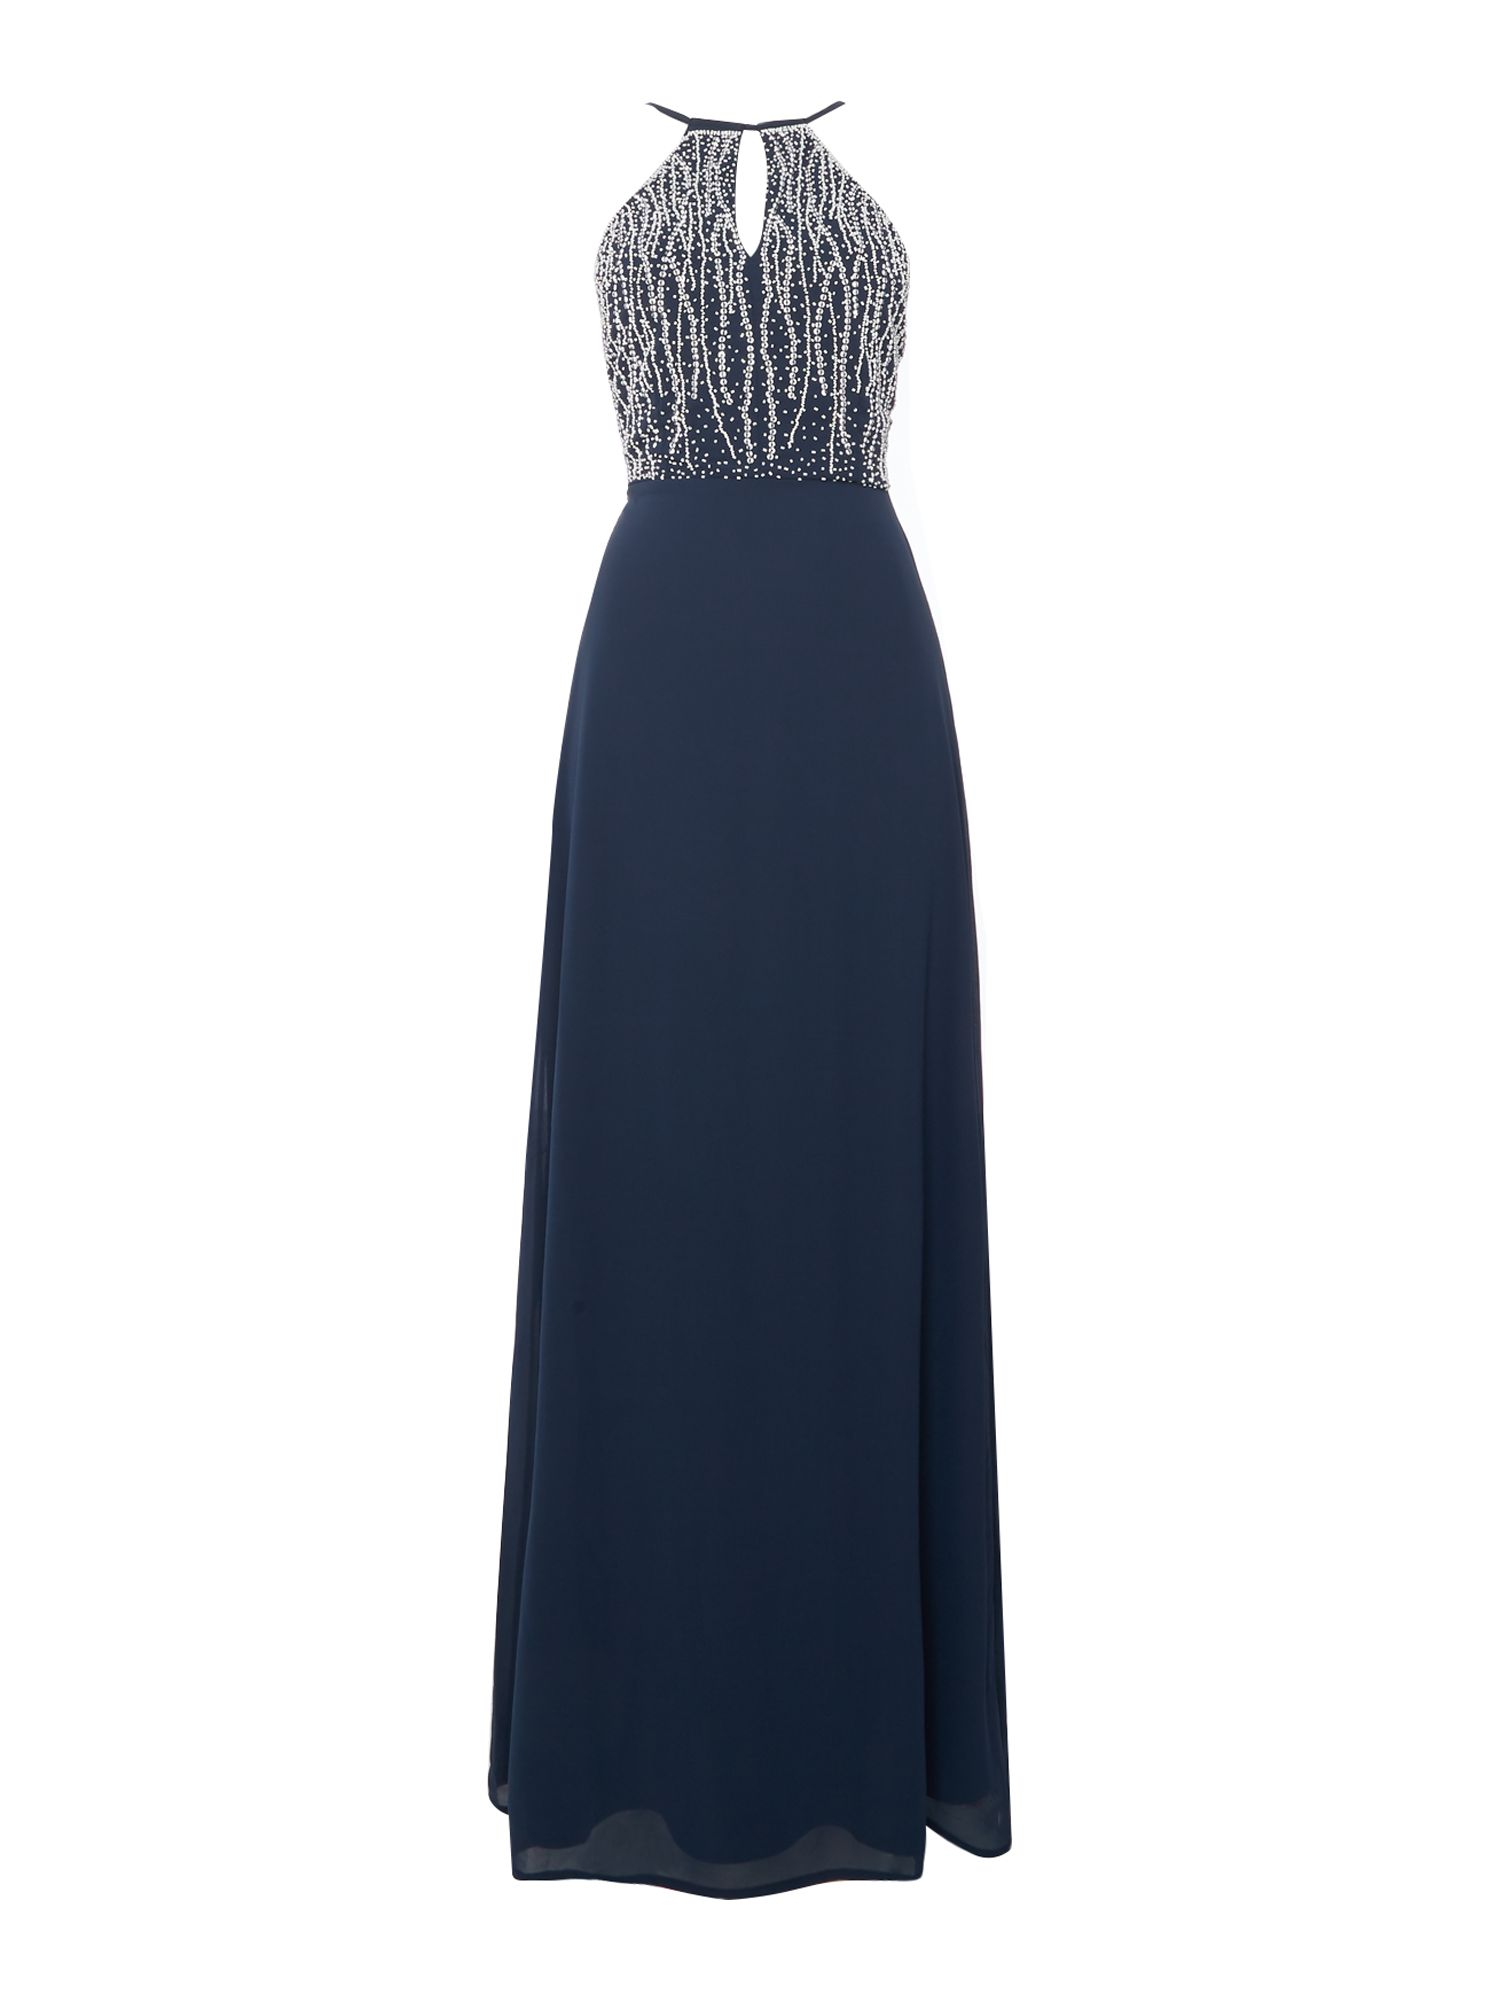 Lace and Beads Lace and Beads Halter Neck Embellished Top Maxi Dress, Navy